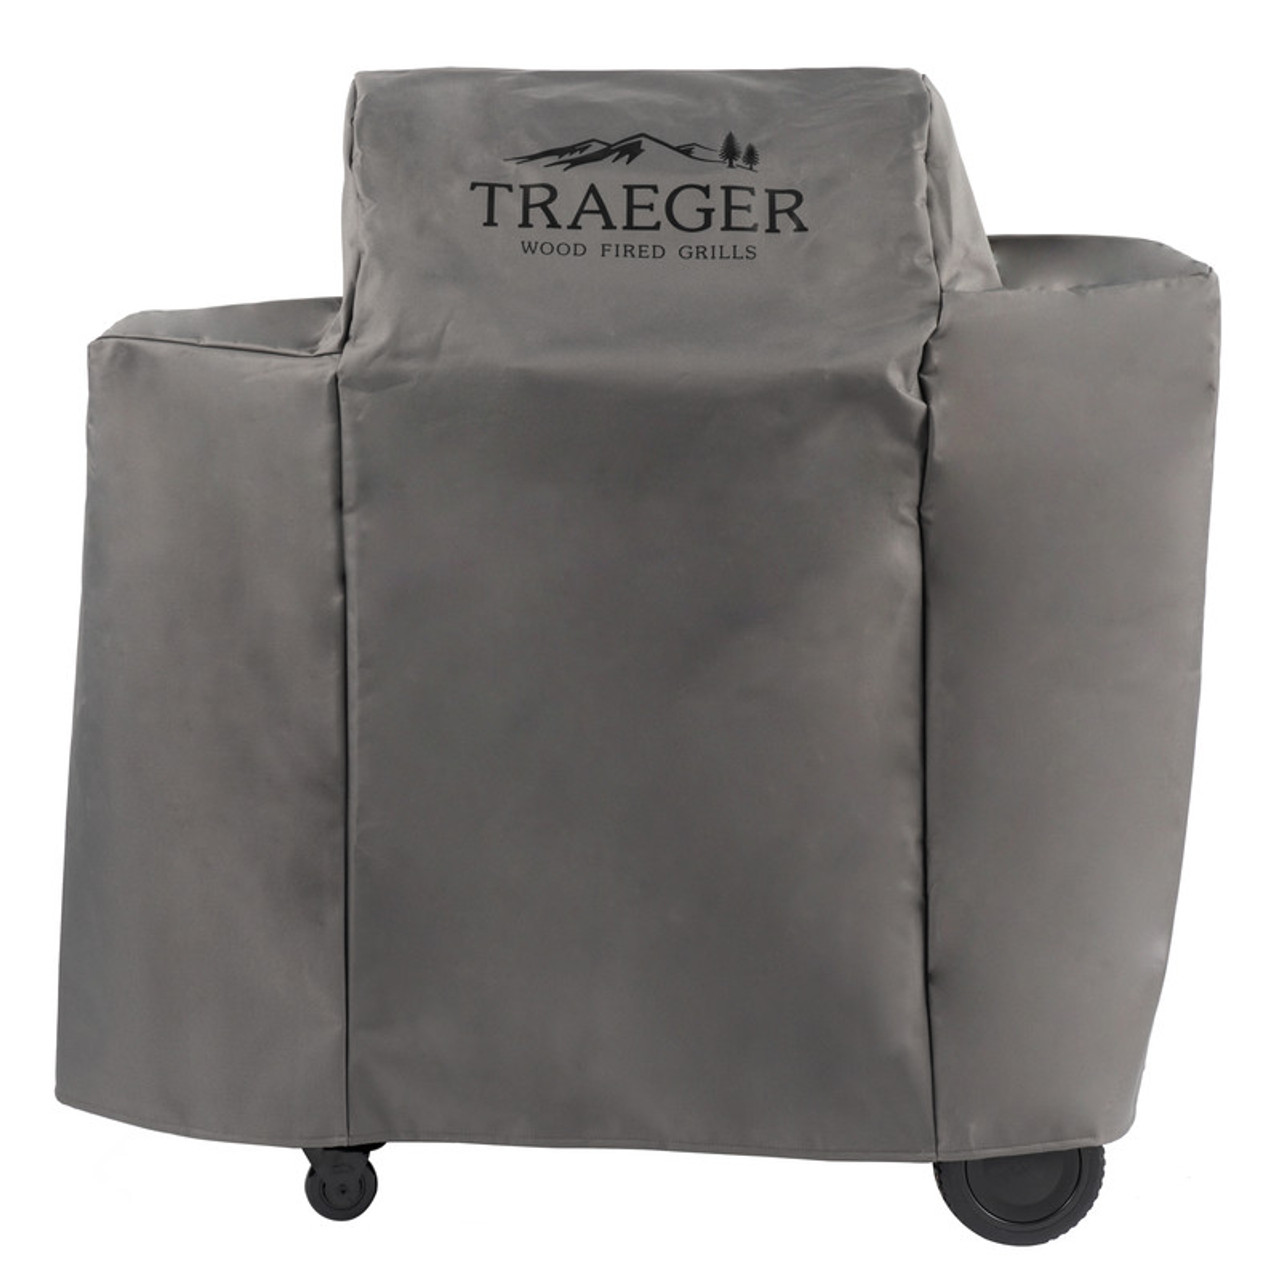 TRAEGER PELLET GRILL Ironwood 650 Full-Length Grill Cover BAC505